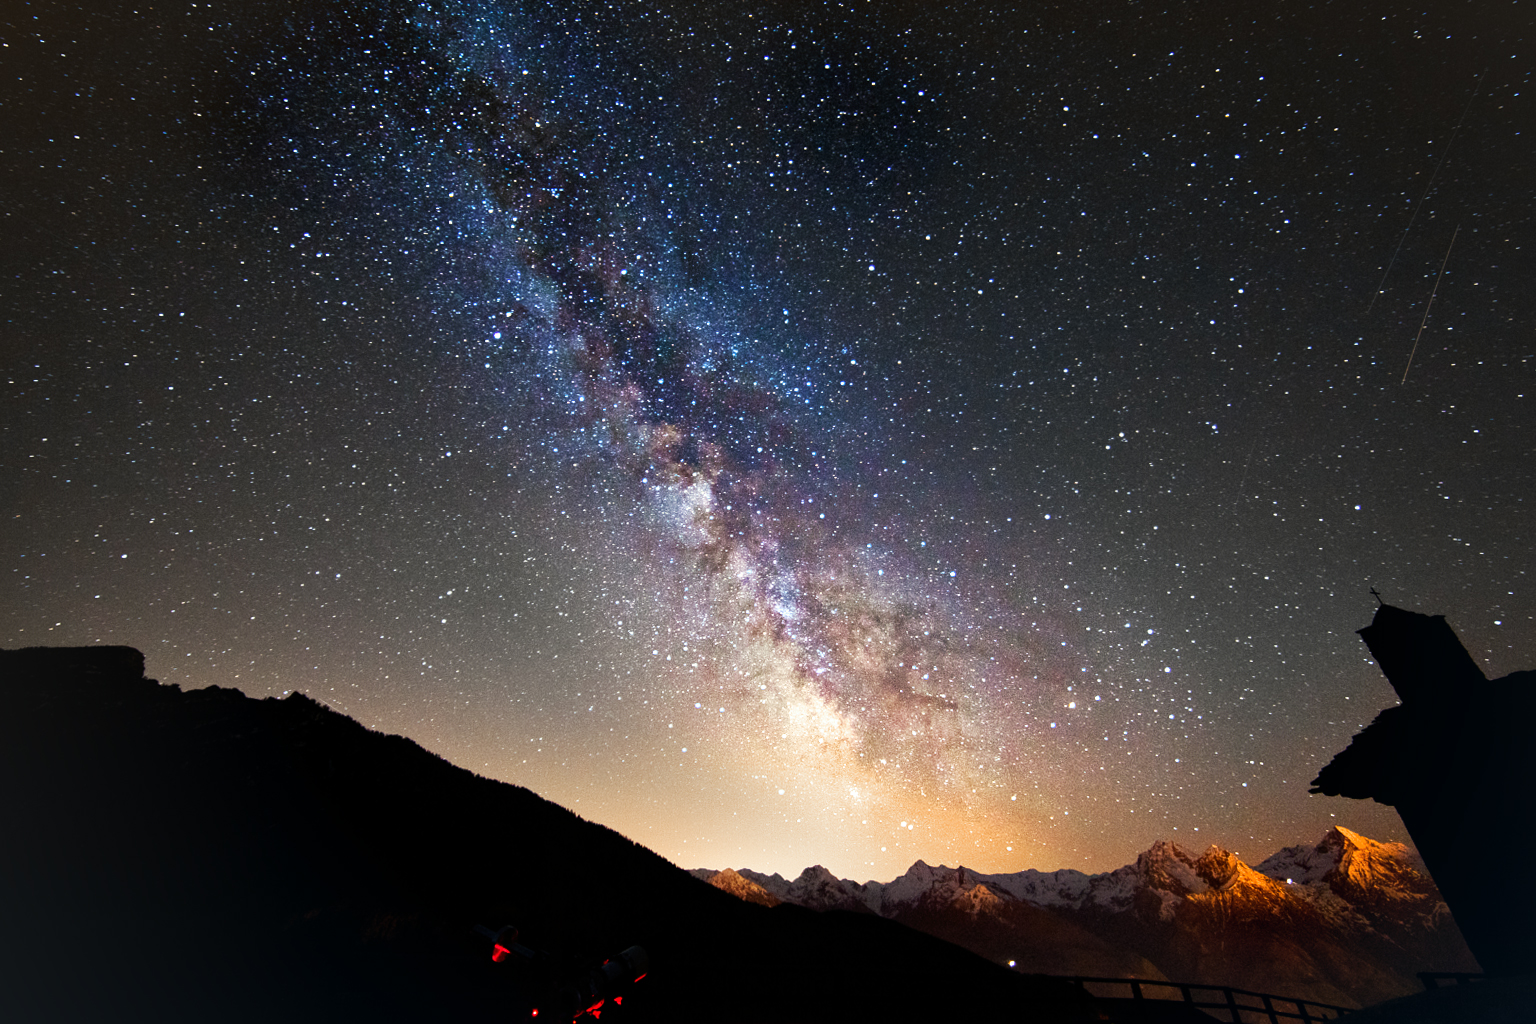 To milky way the photograph how